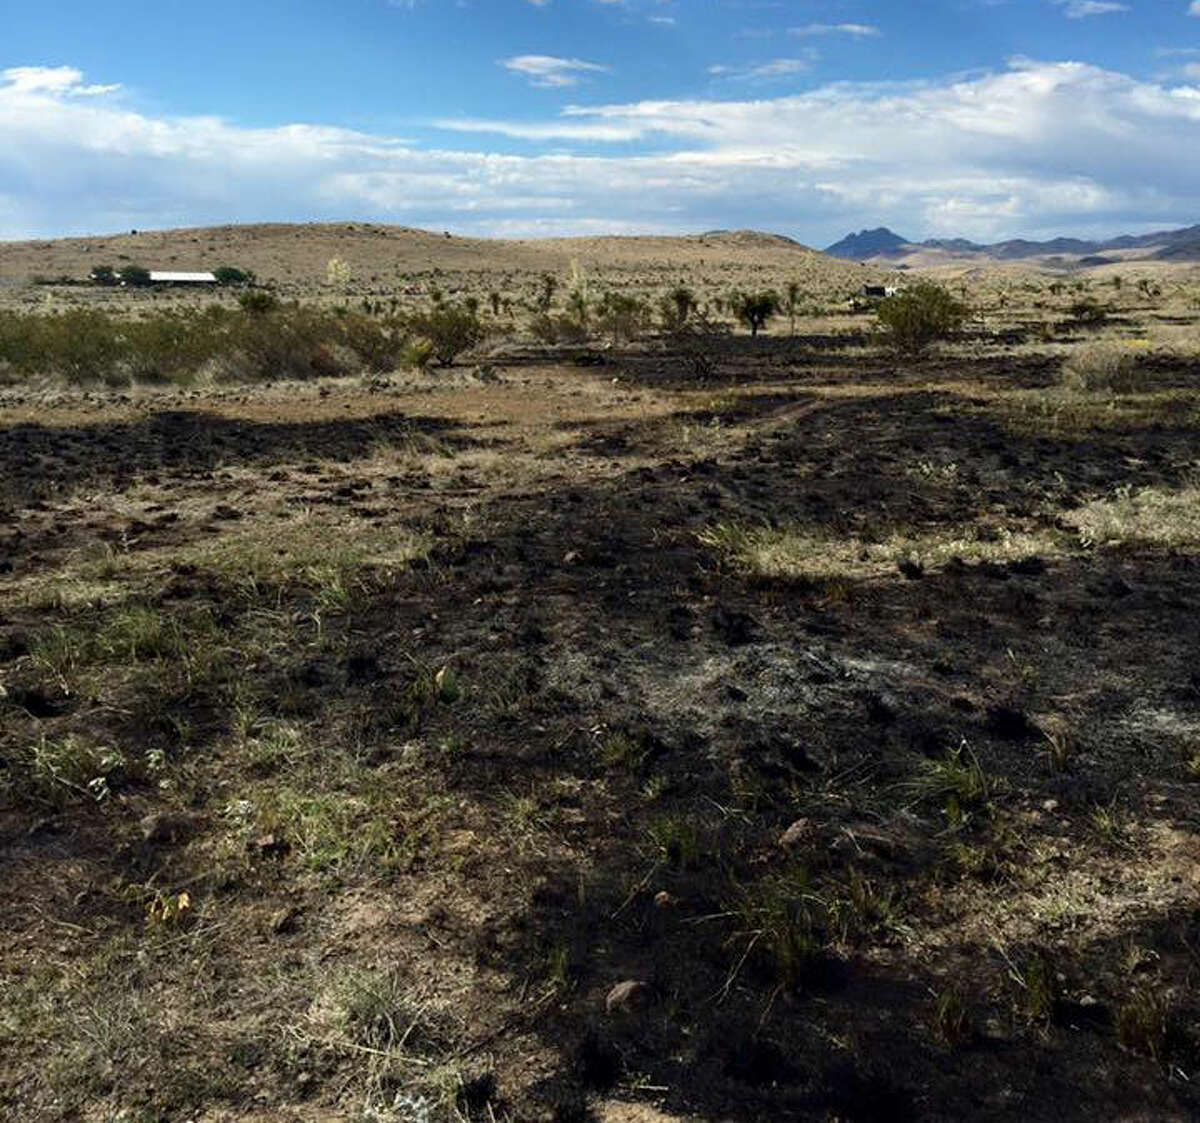 The aftermath of a grass fire in Jeff Davis County. Photo courtesy of Jeff Davis County Fire Marshal Roy Hurley.